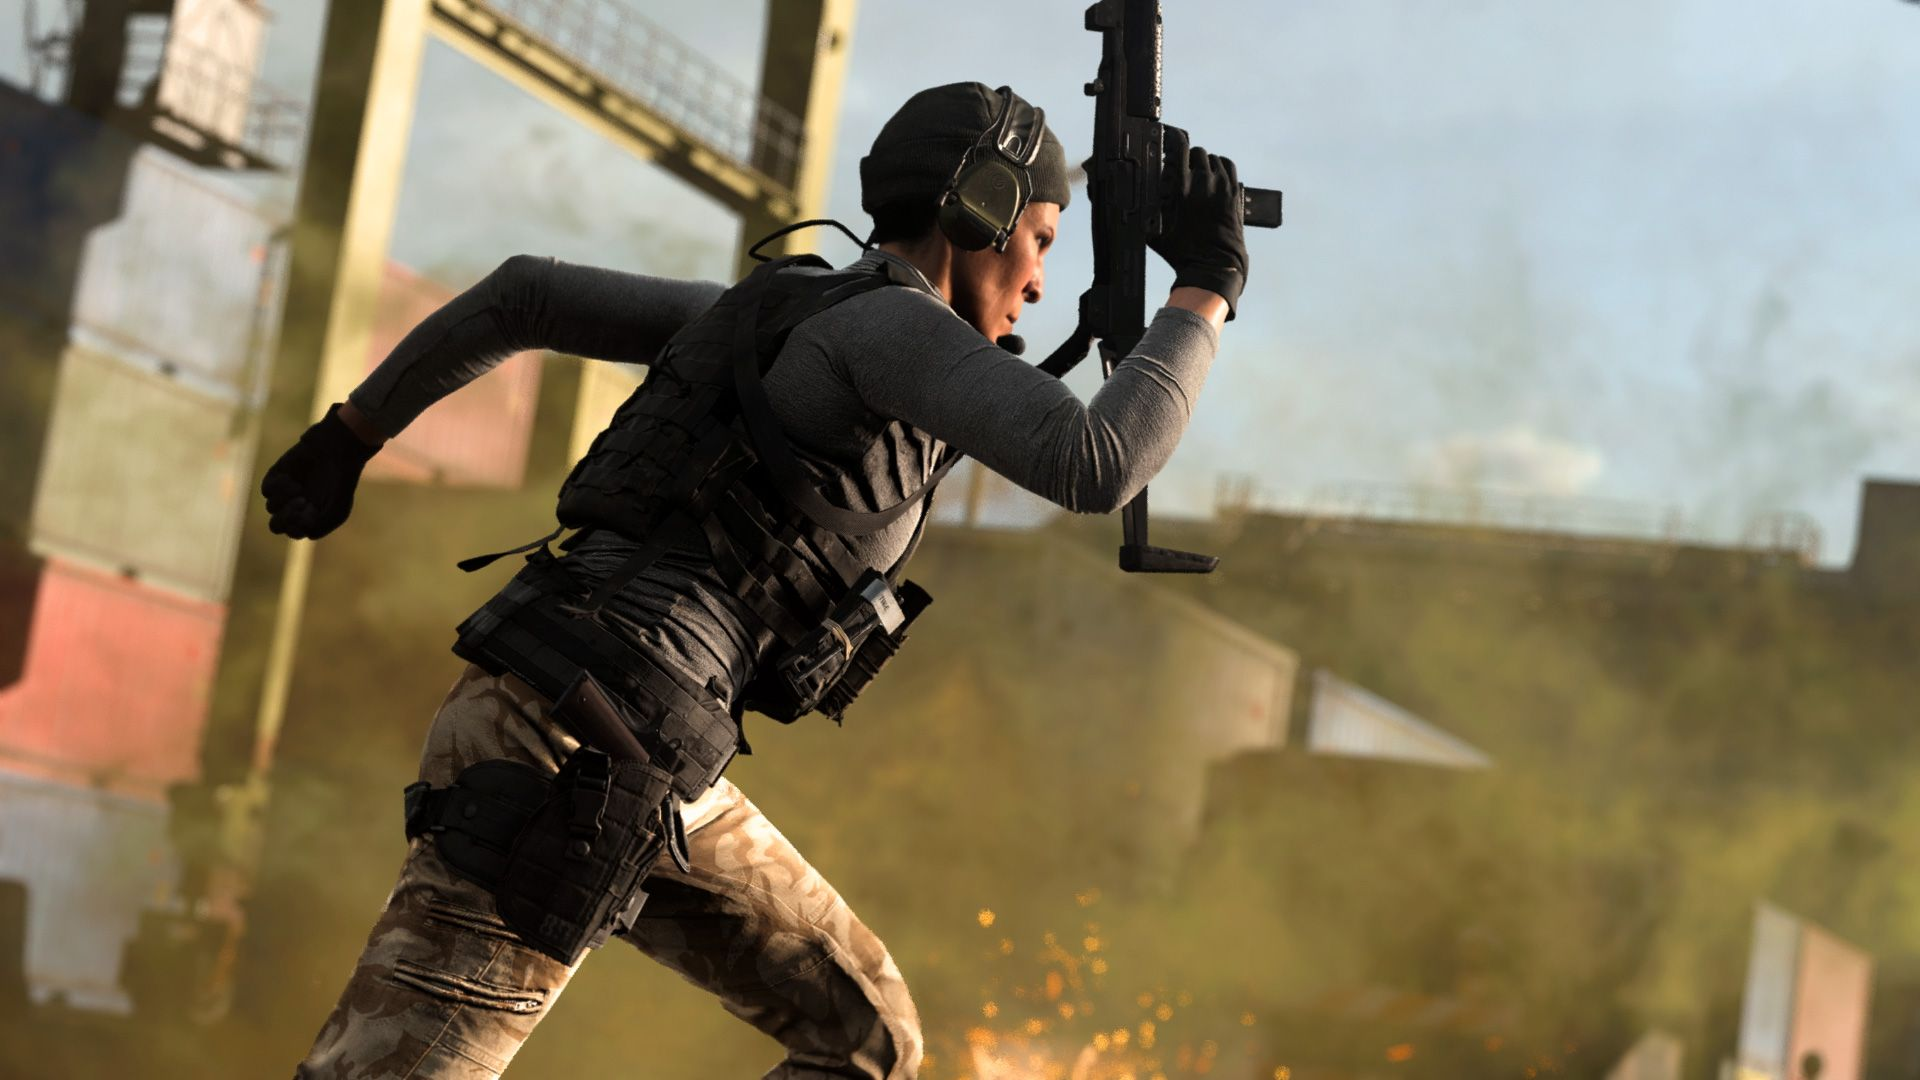 Best SMG Warzone: which submachine gun to use in Season 5